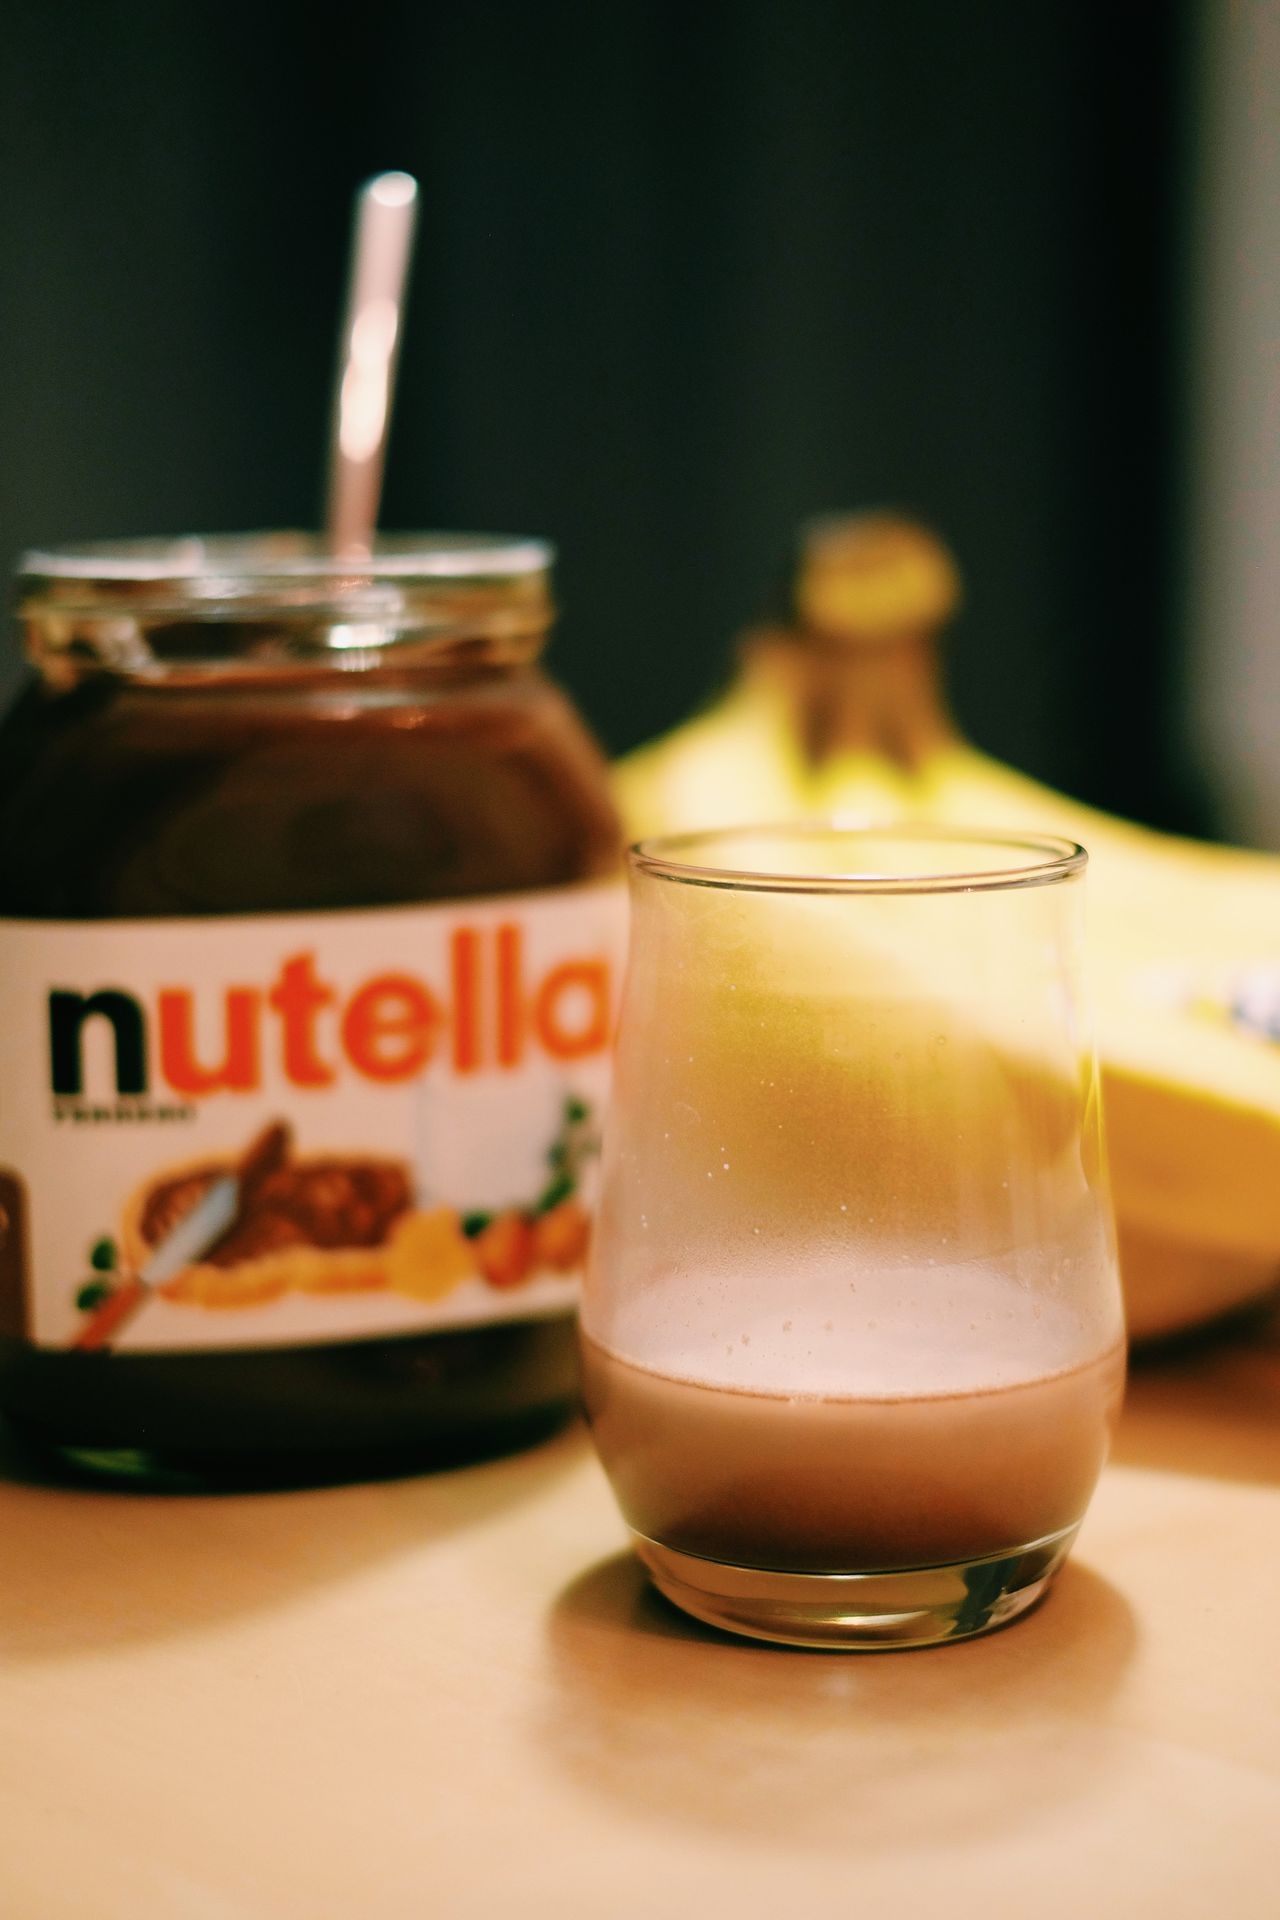 Banana Close-up Day Drink Drinking Glass Focus On Foreground Food Food And Drink Freshness Healthy Eating Indoors  No People Nutella Refreshment Table